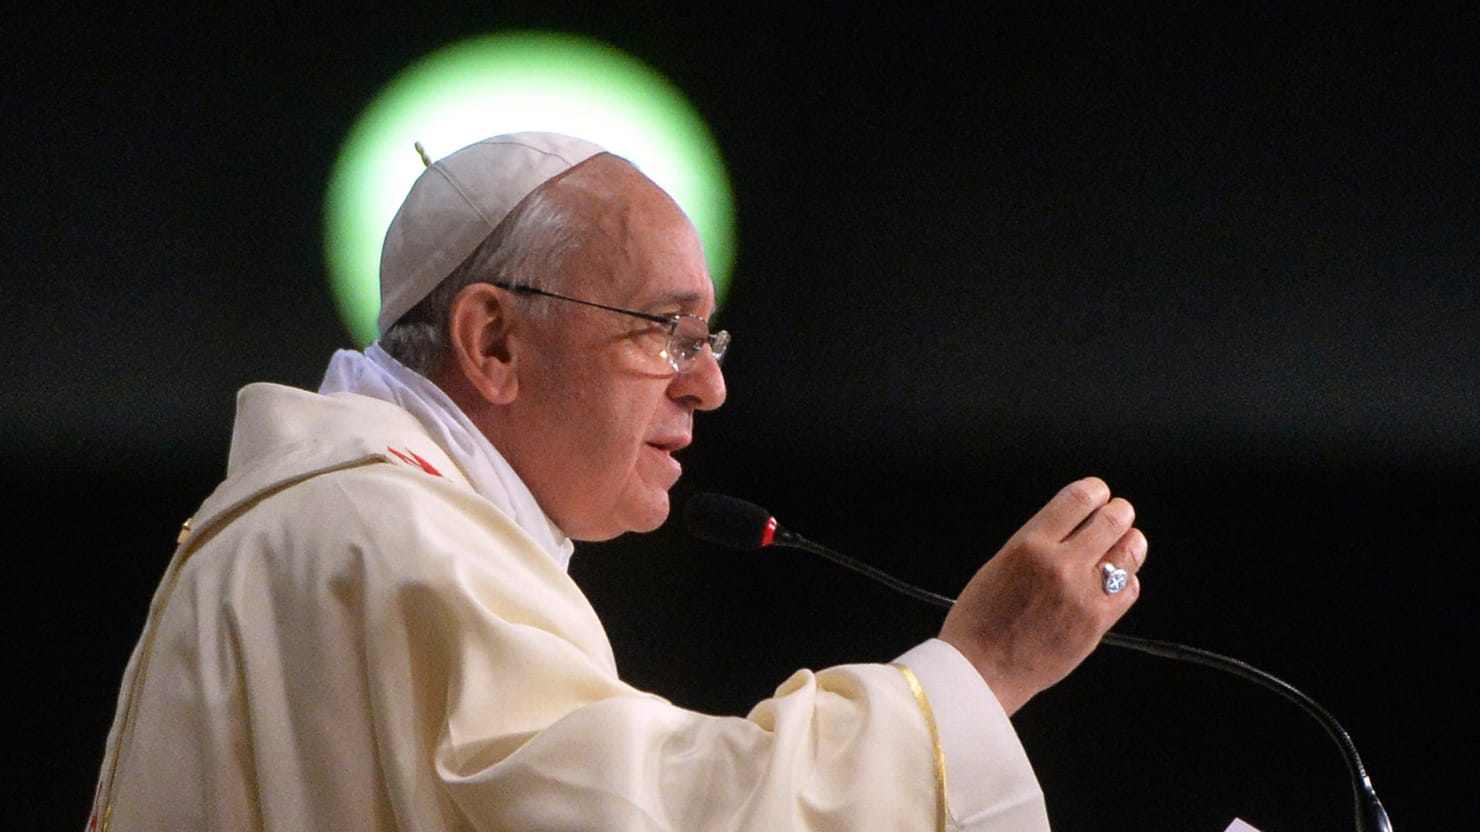 The Francis Effect: The Lessons of Collaborative Leadership in the Catholic Church